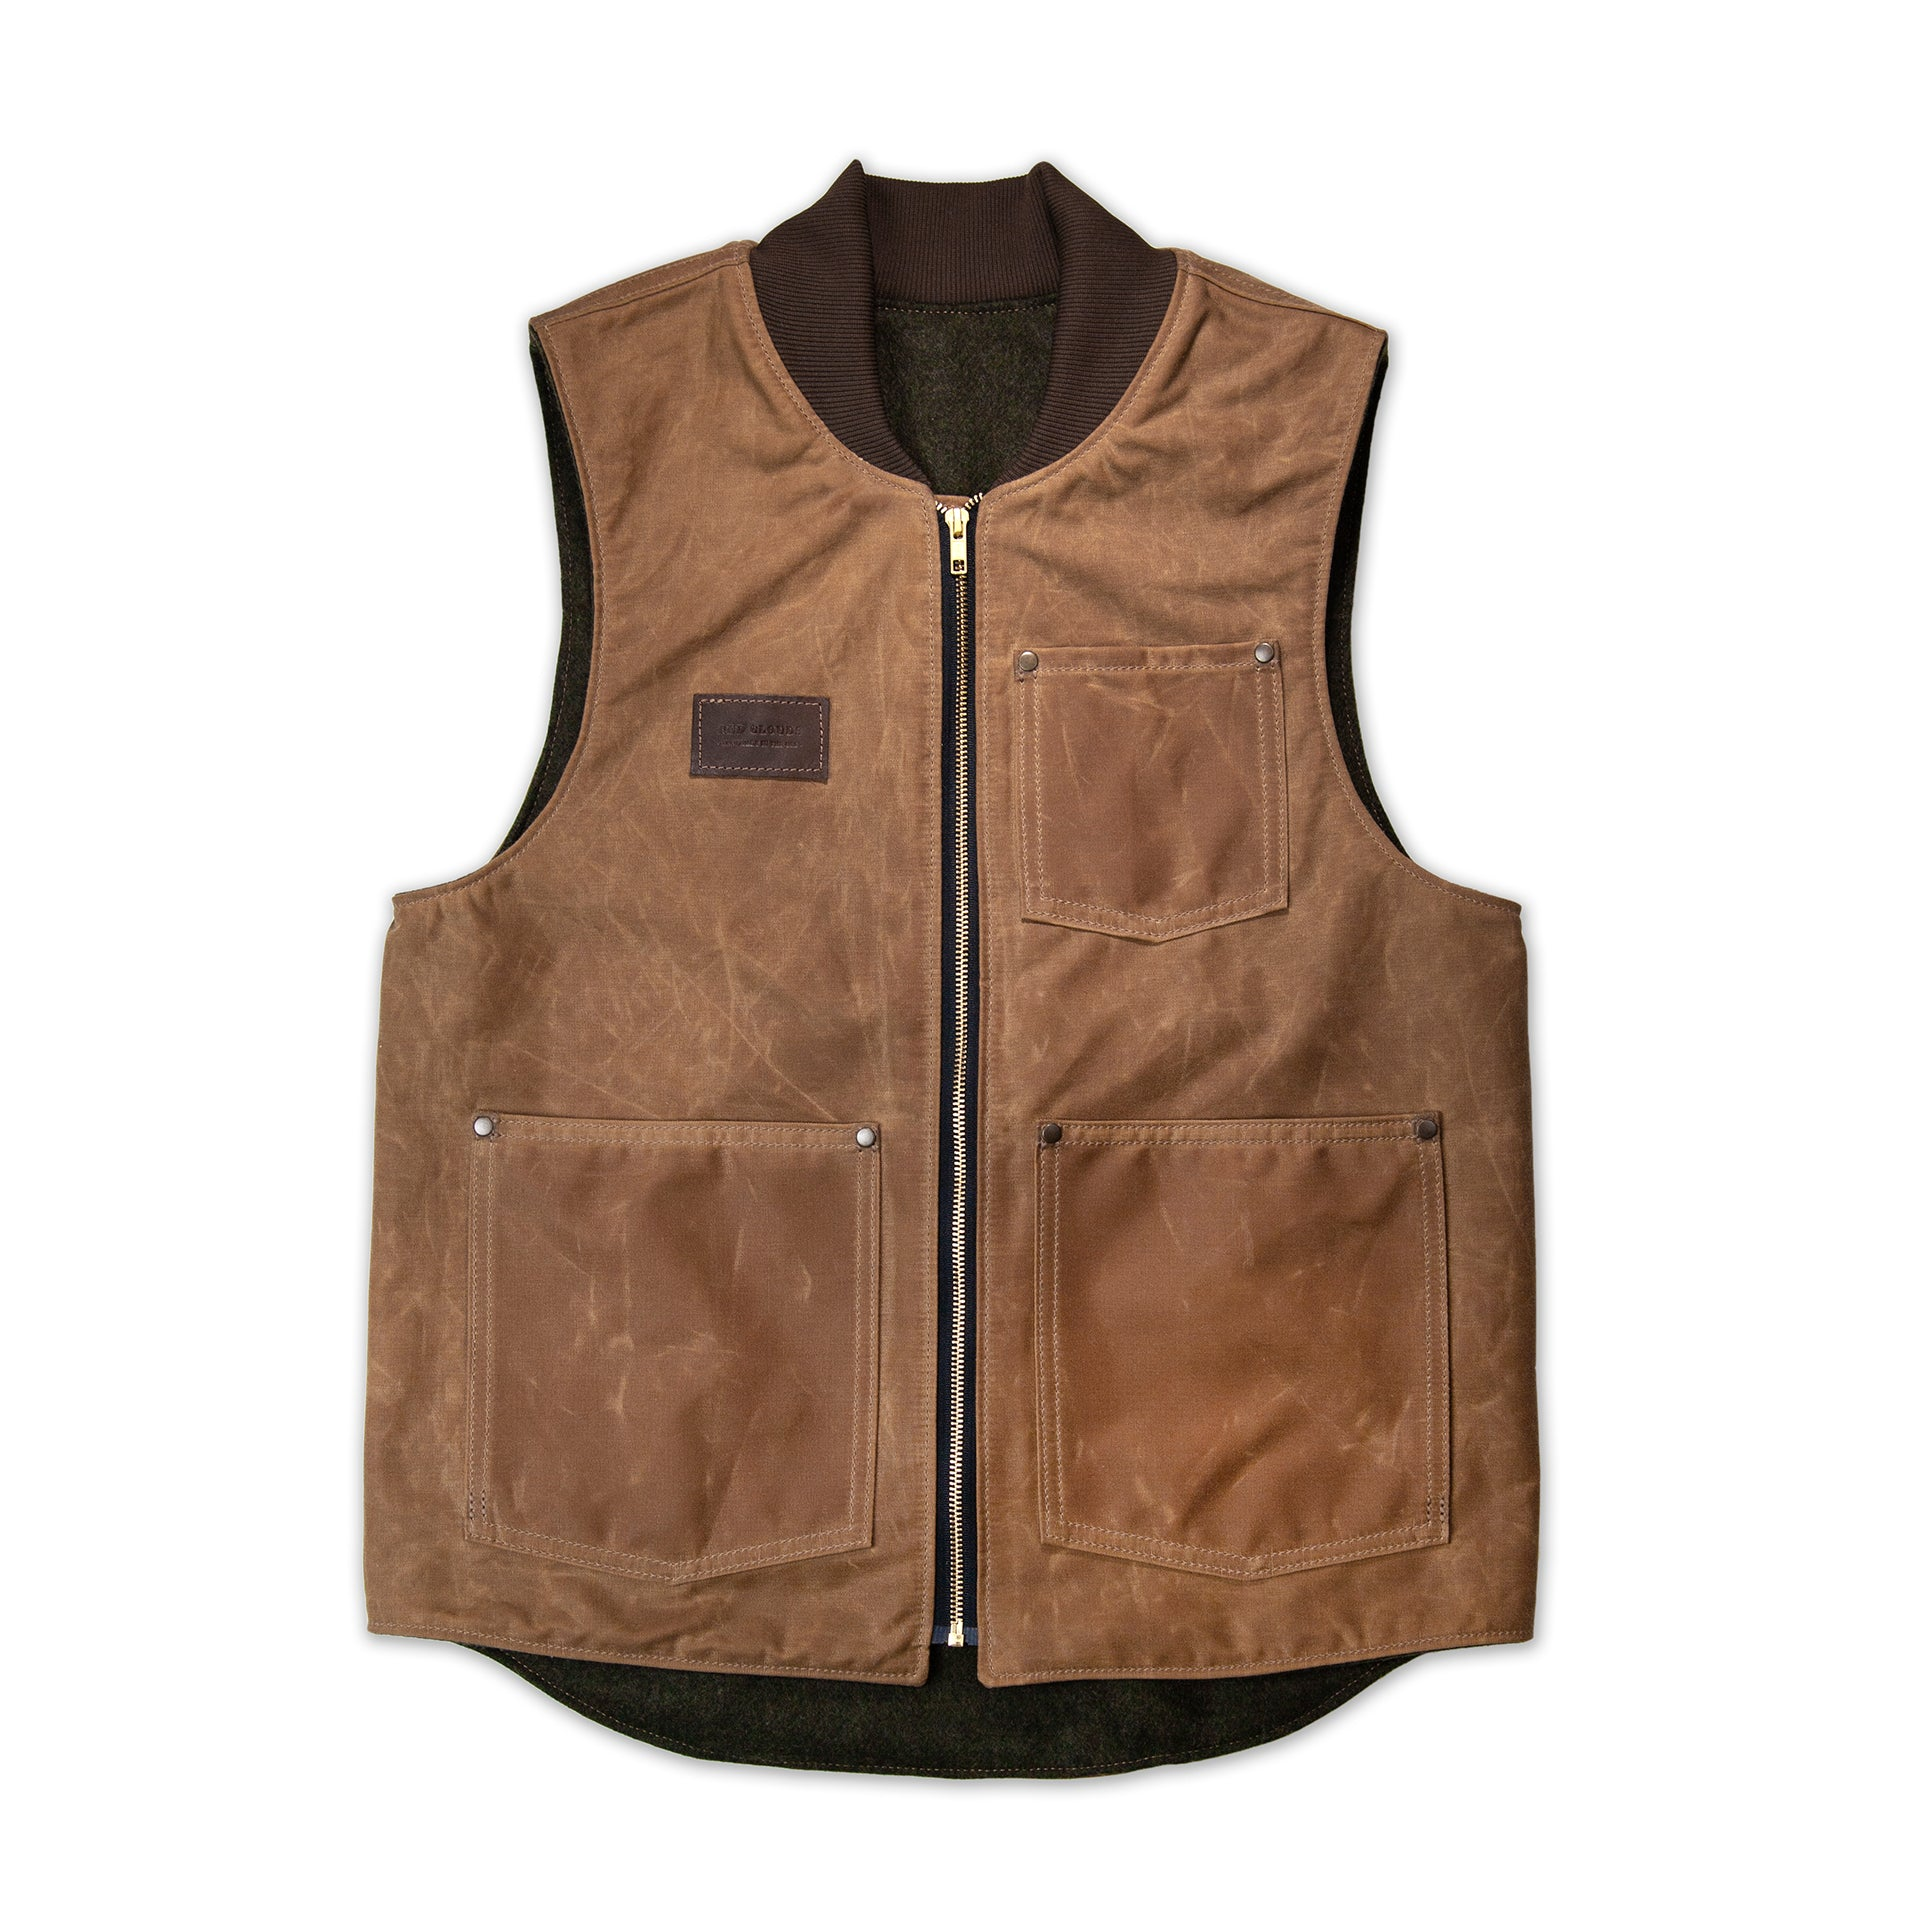 Work vest, waxed vest, red clouds collective, moto vest, best best, riding vest, heavy duty vest, durable vest, wool vest, durable, made in usa, made in america, quality vest